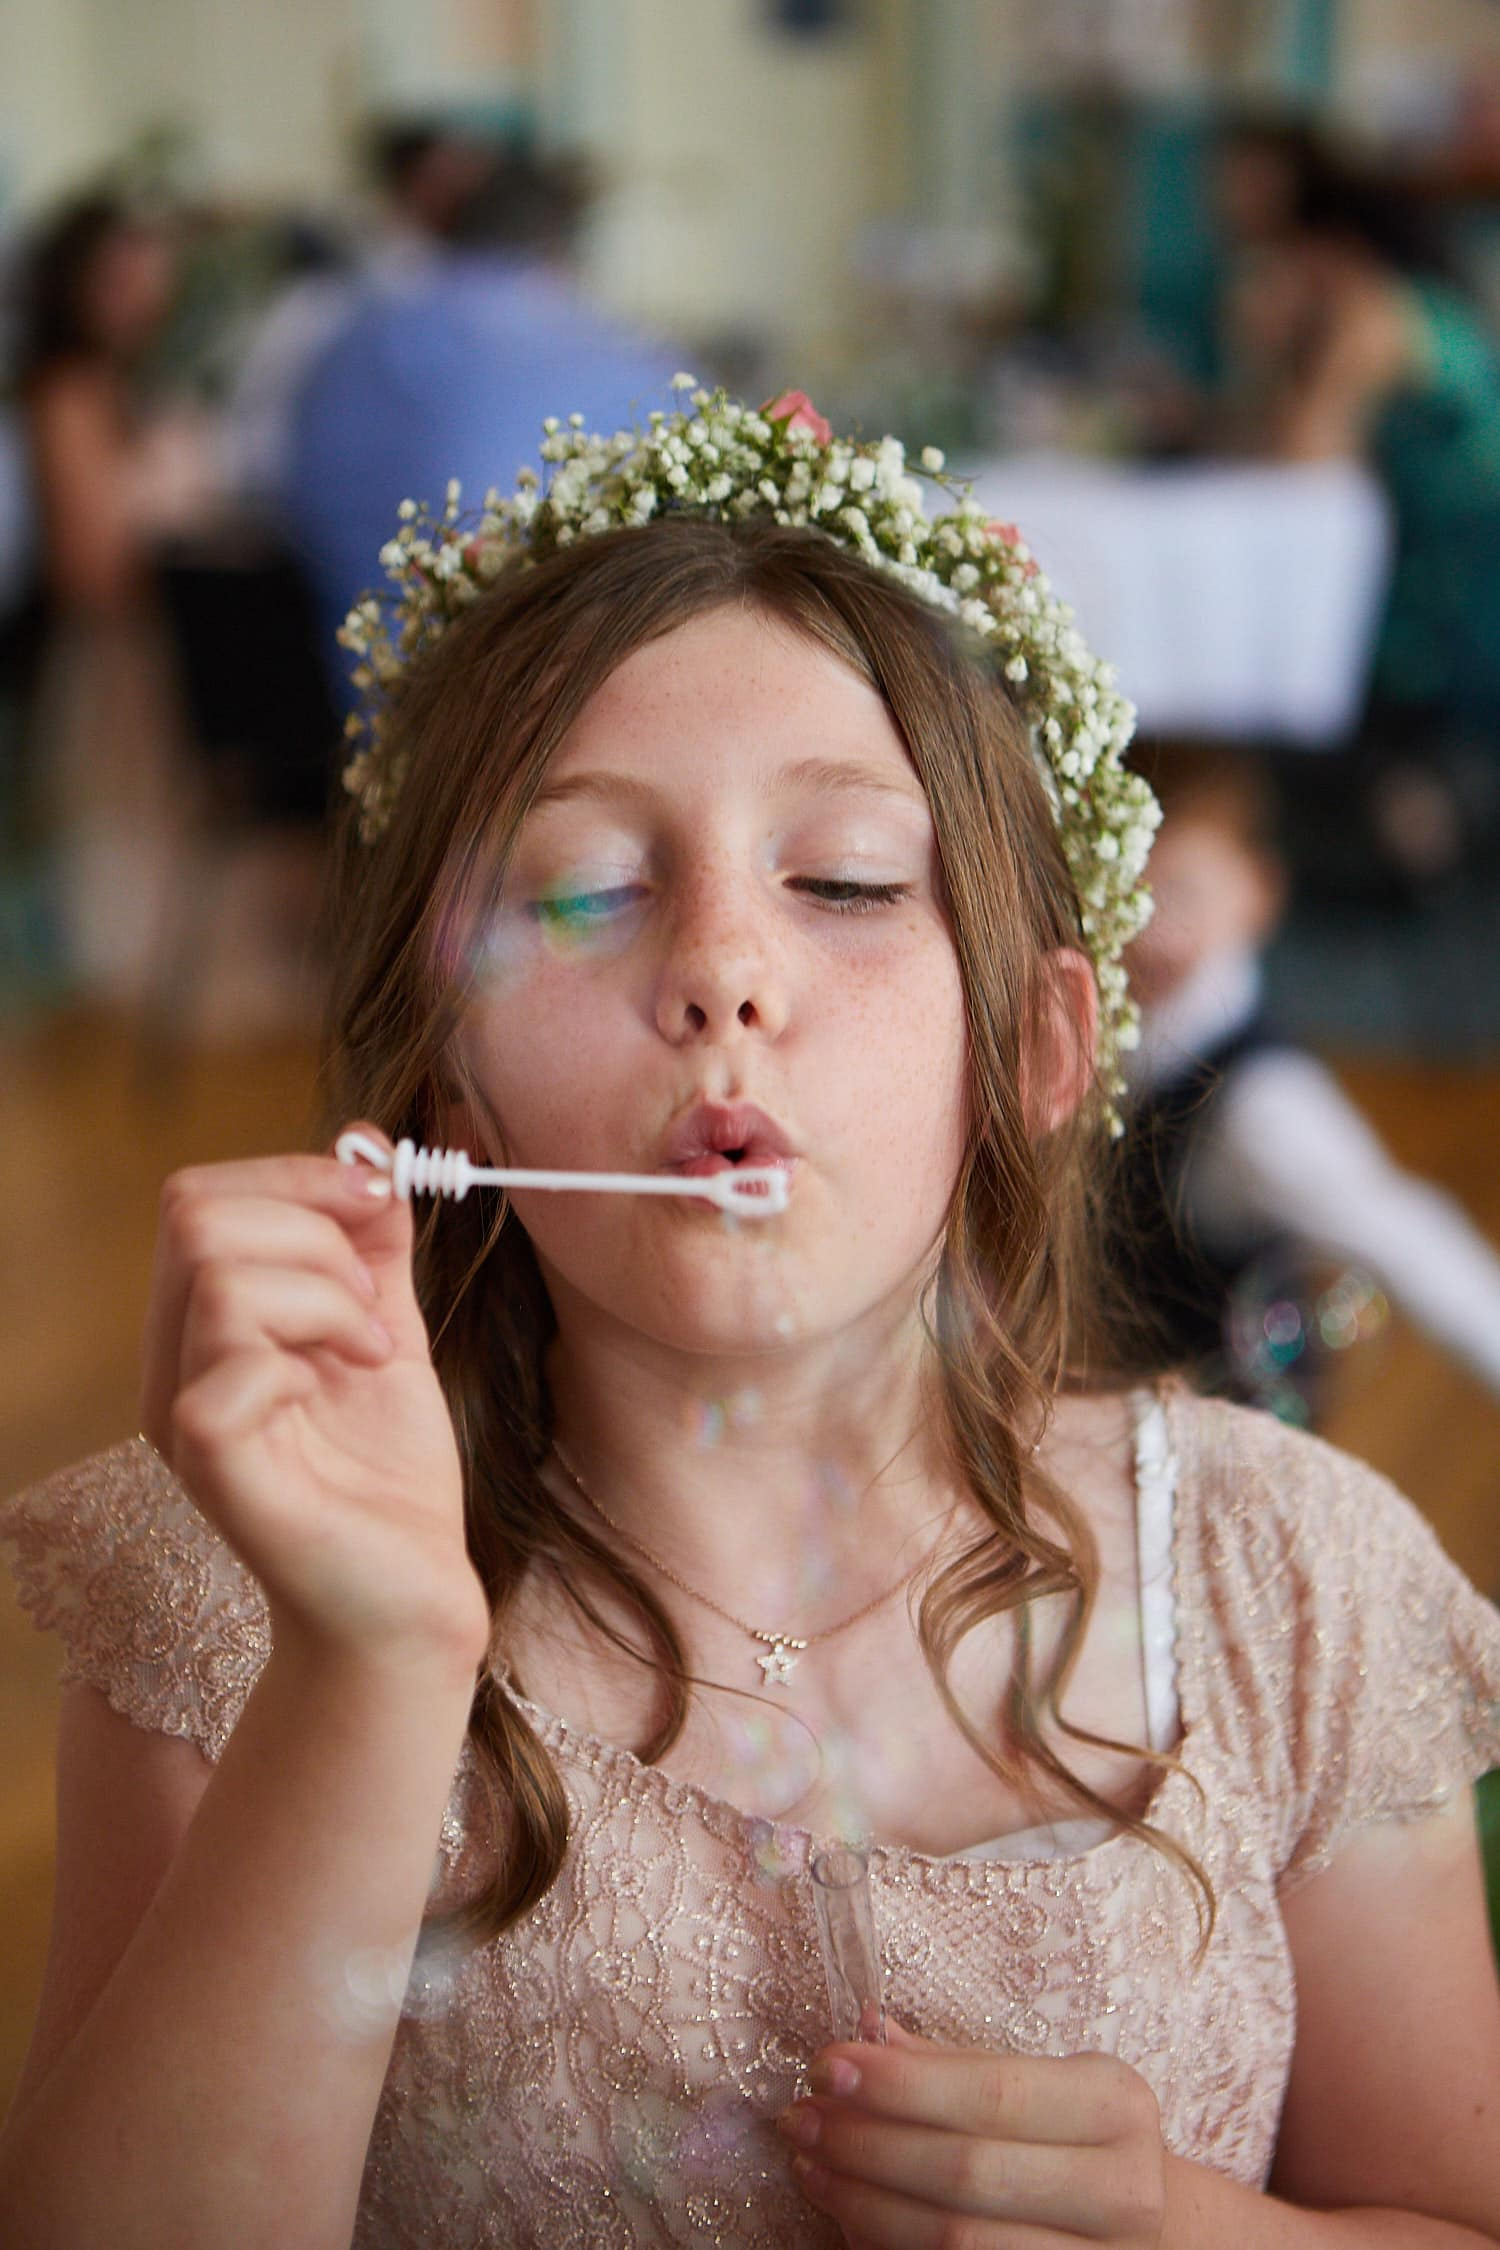 A flower girl blows bubbles at a wedding in Louth